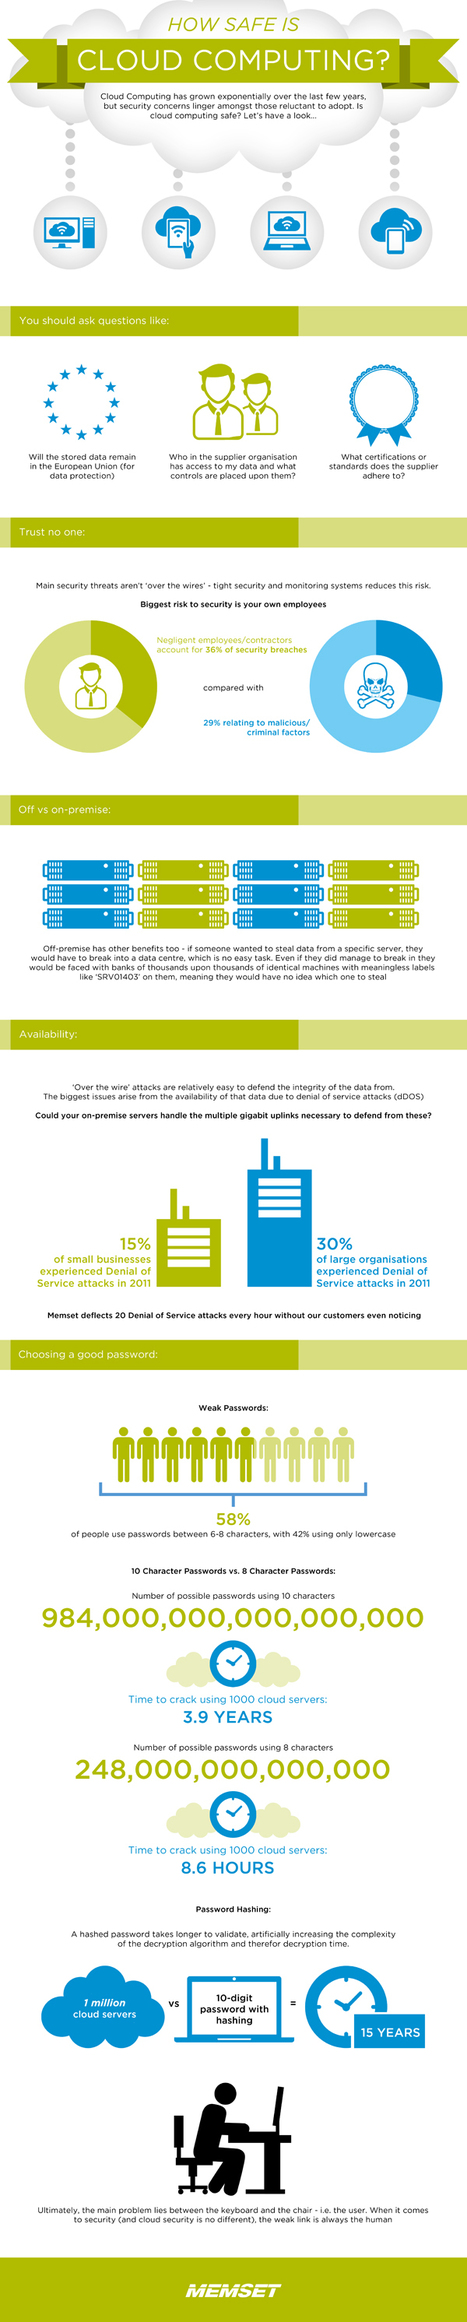 INFOGRAPHIC: How Safe is The Cloud? | SM | Scoop.it